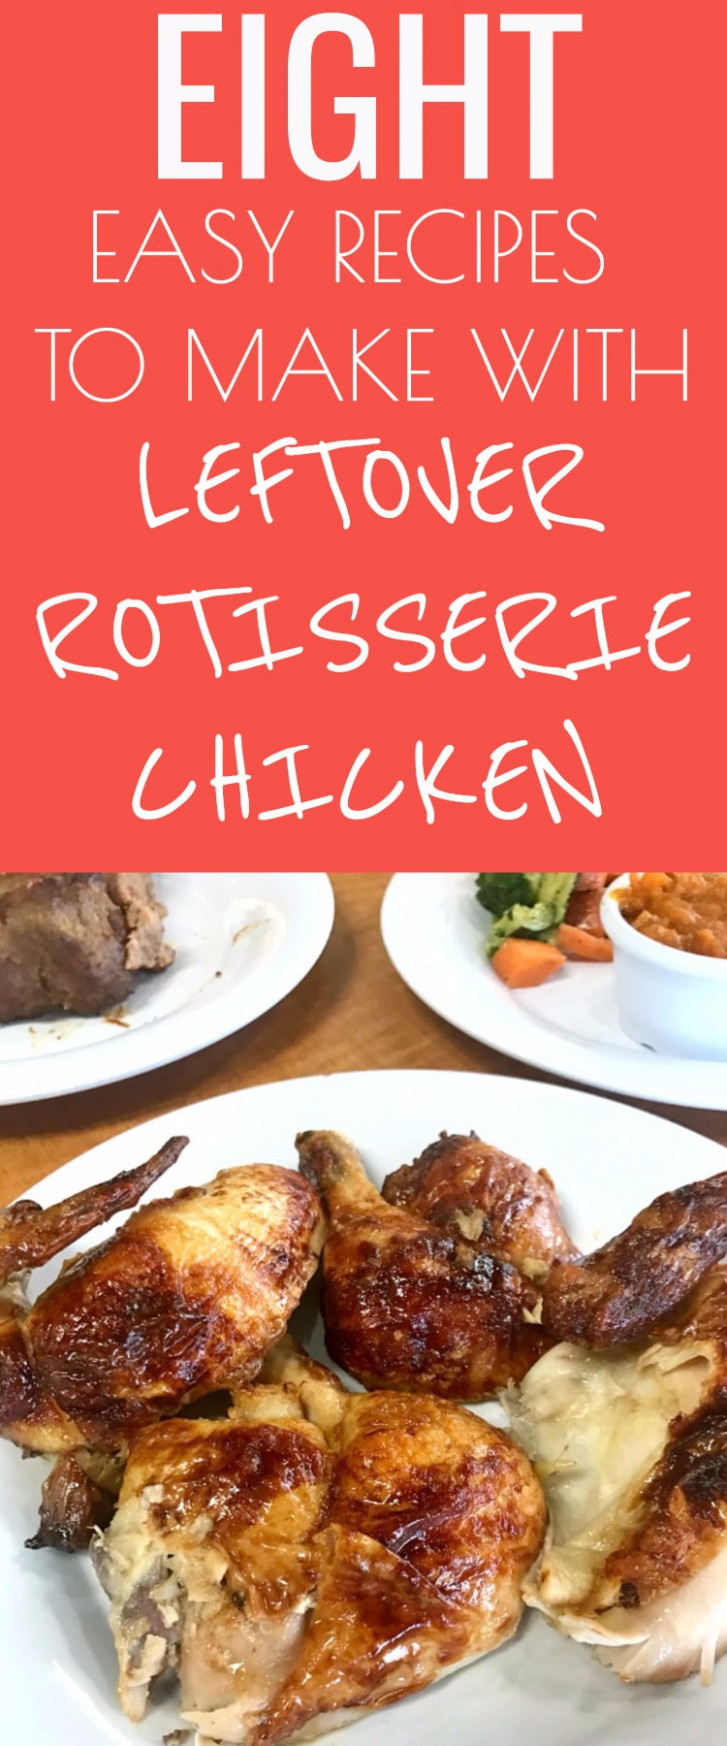 8 Easy and Delicious Leftover Rotisserie Chicken Recipes - recipes leftover rotisserie chicken